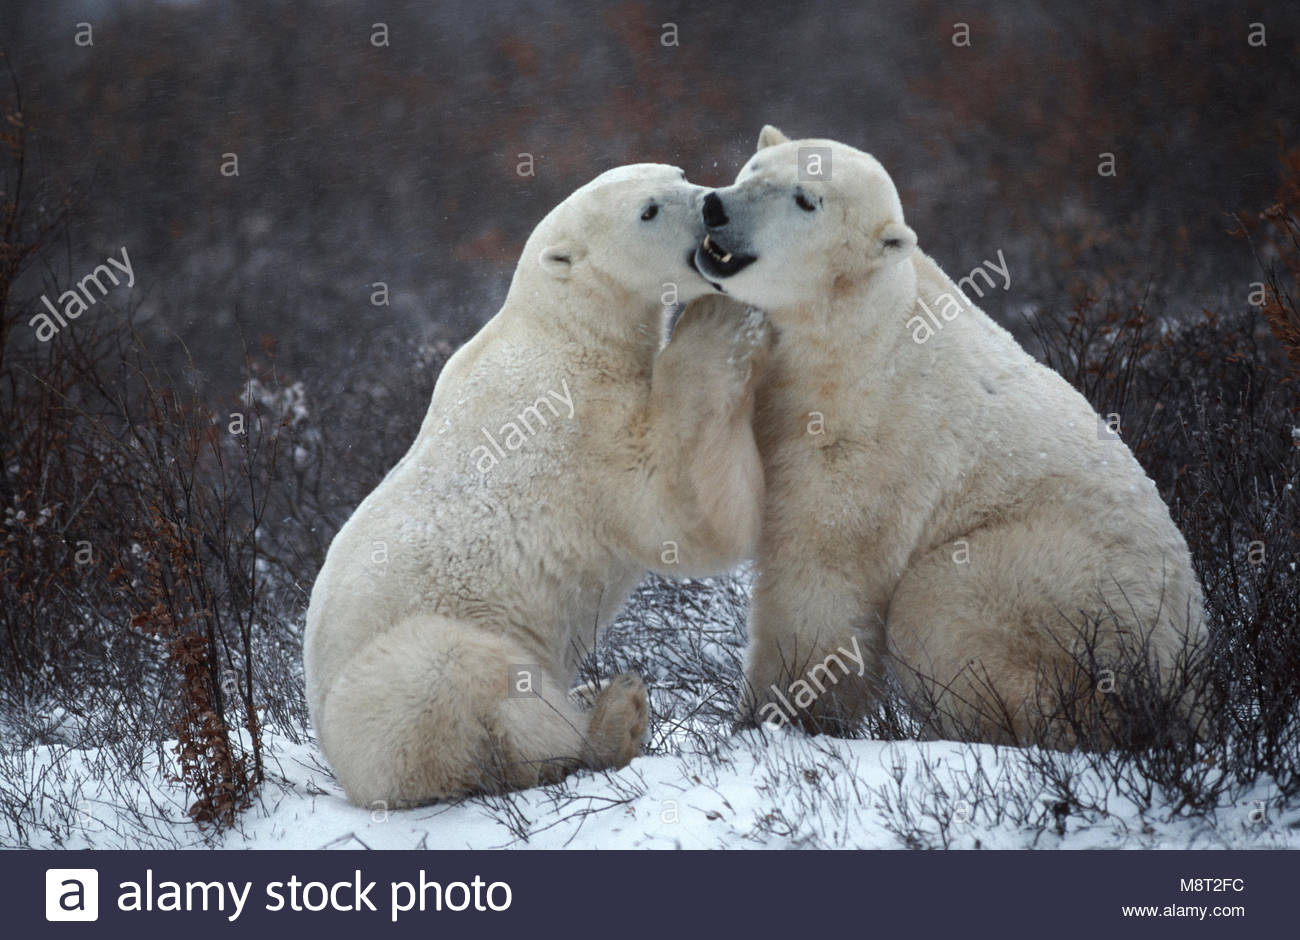 Polar bears (Ursus maritimus) appears to be whispering a funny joke, Wapusk National Park, MB, Canada - Stock Image